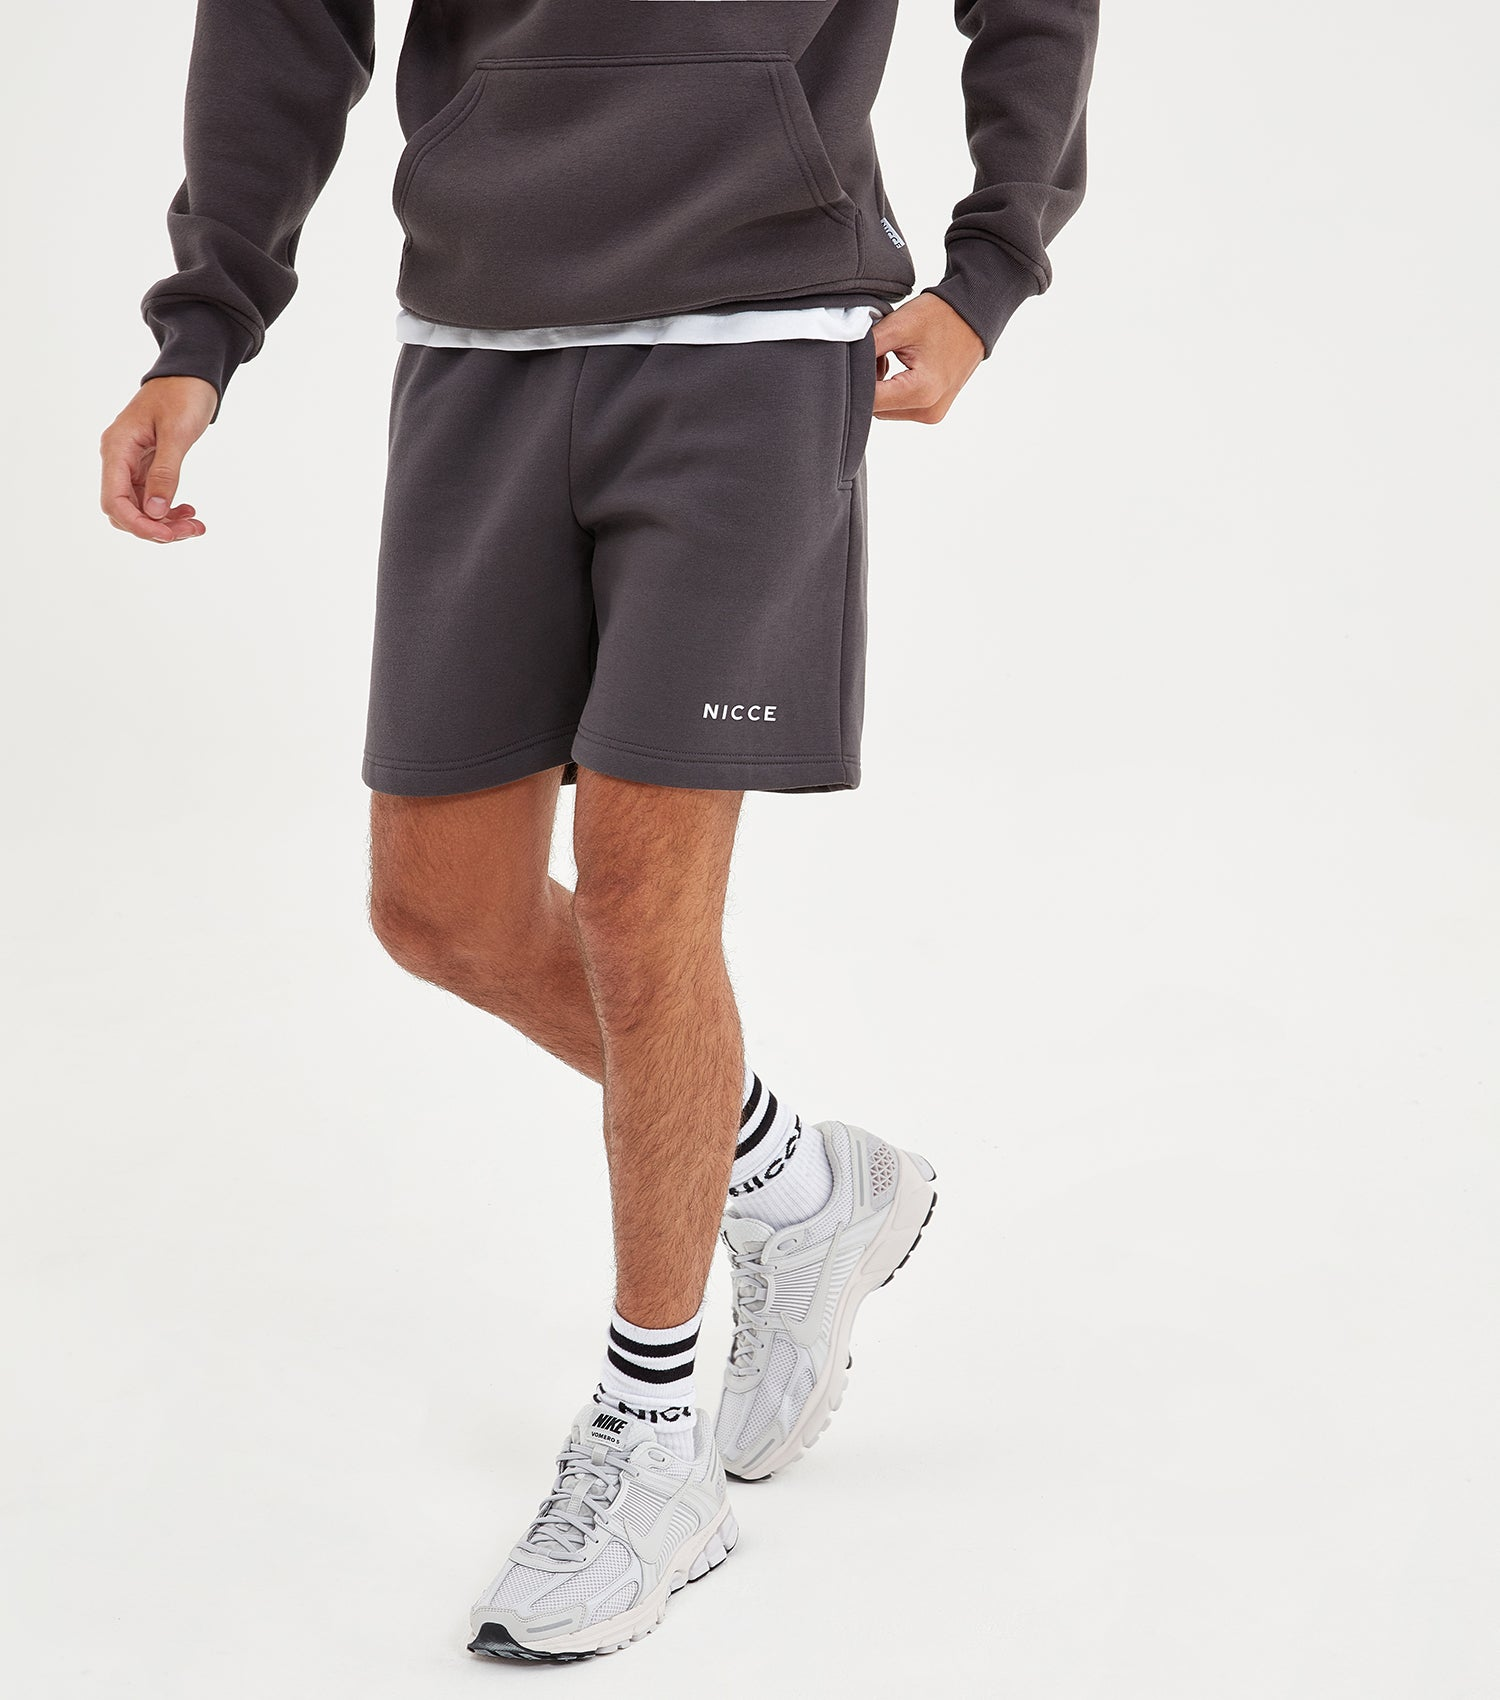 NICCE Mens Original Logo Jog Shorts | Coal, Shorts